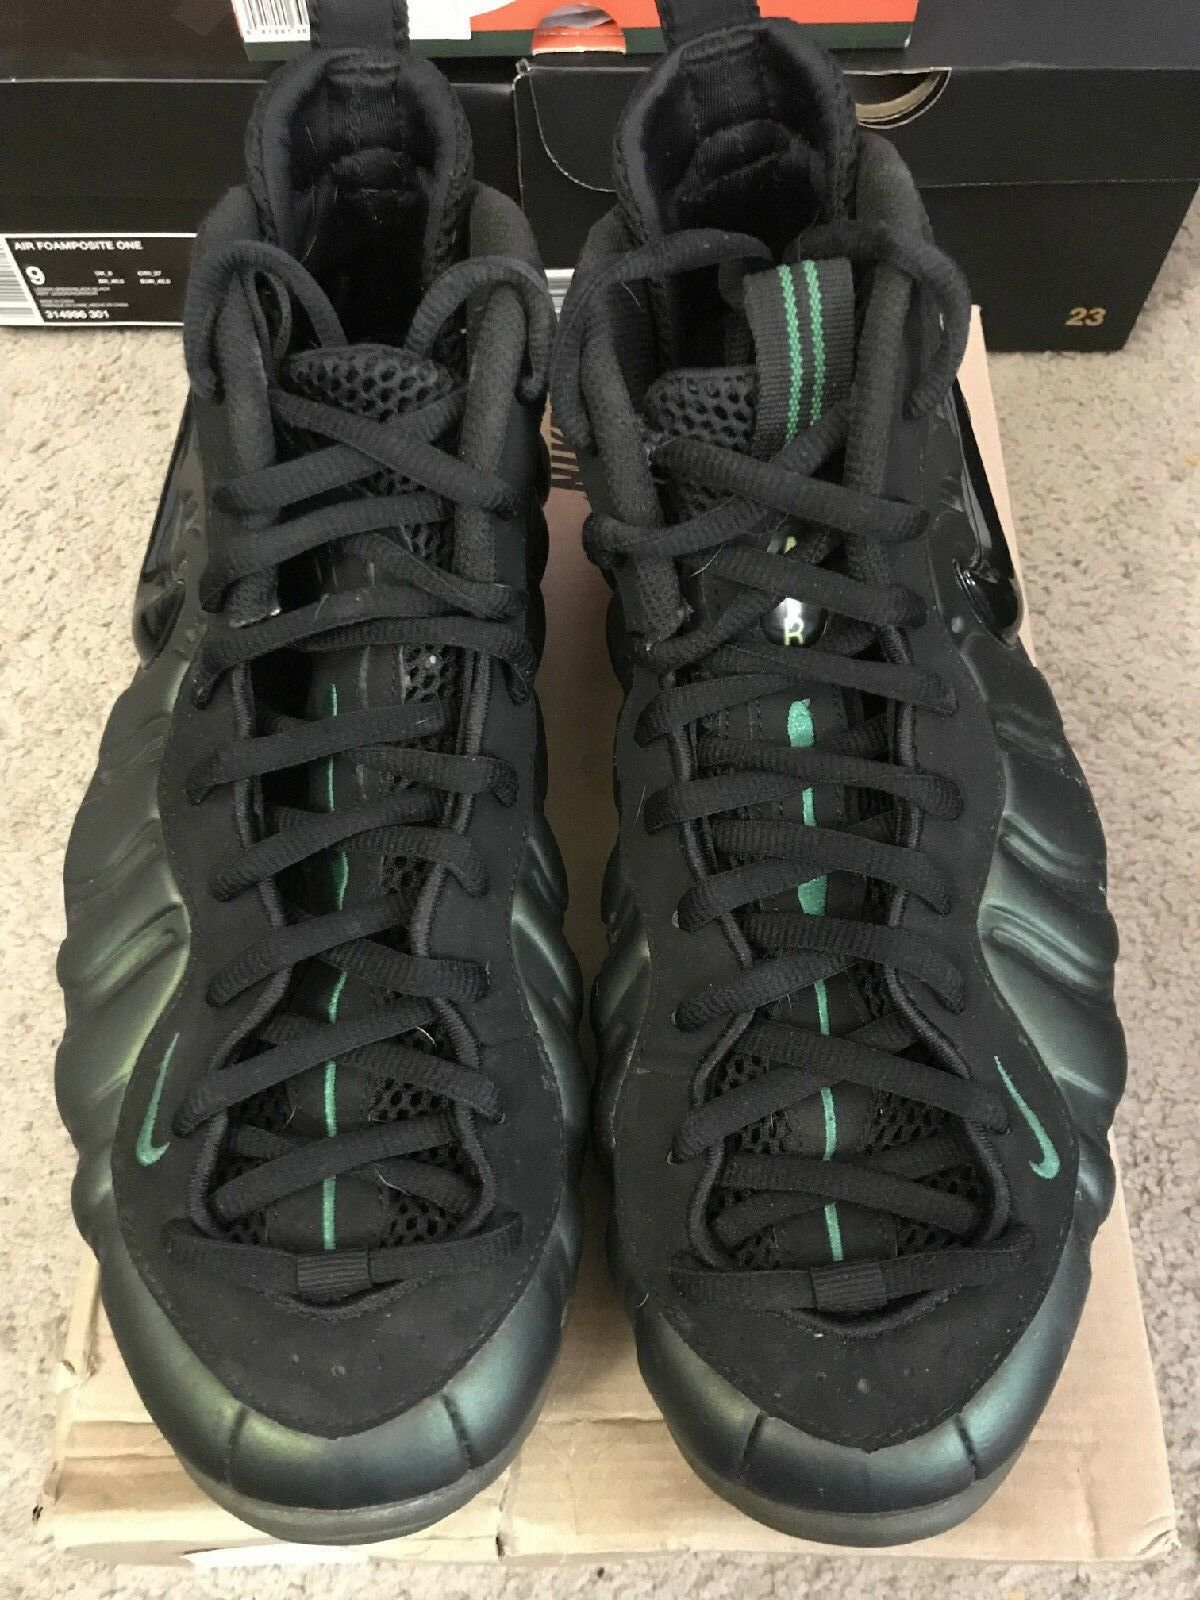 2011 Nike Air Foamposite PRO Pine Green Black 624041-301 Size 10.5